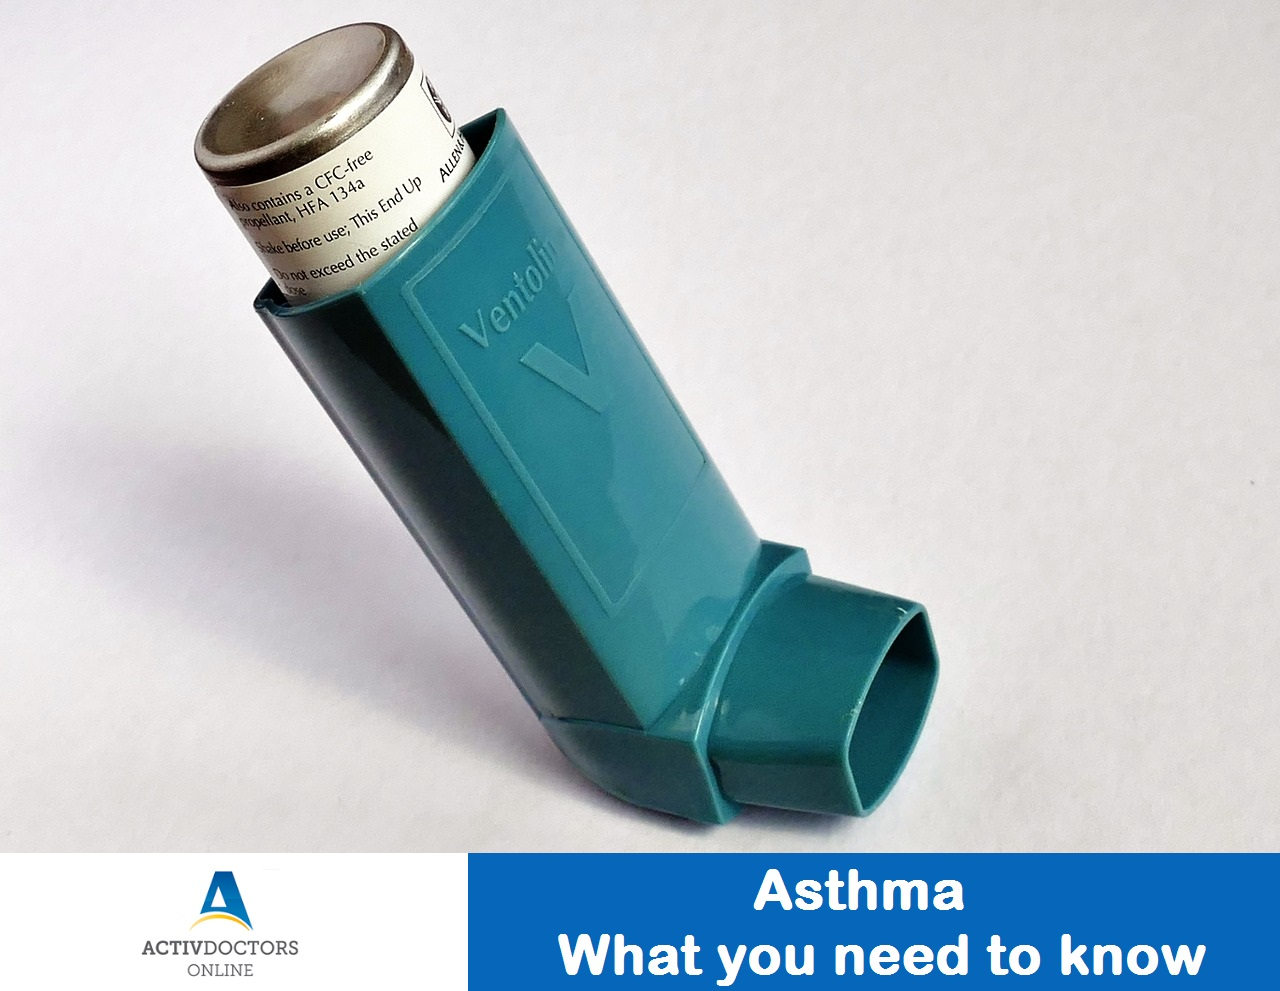 Asthma – What you need to know